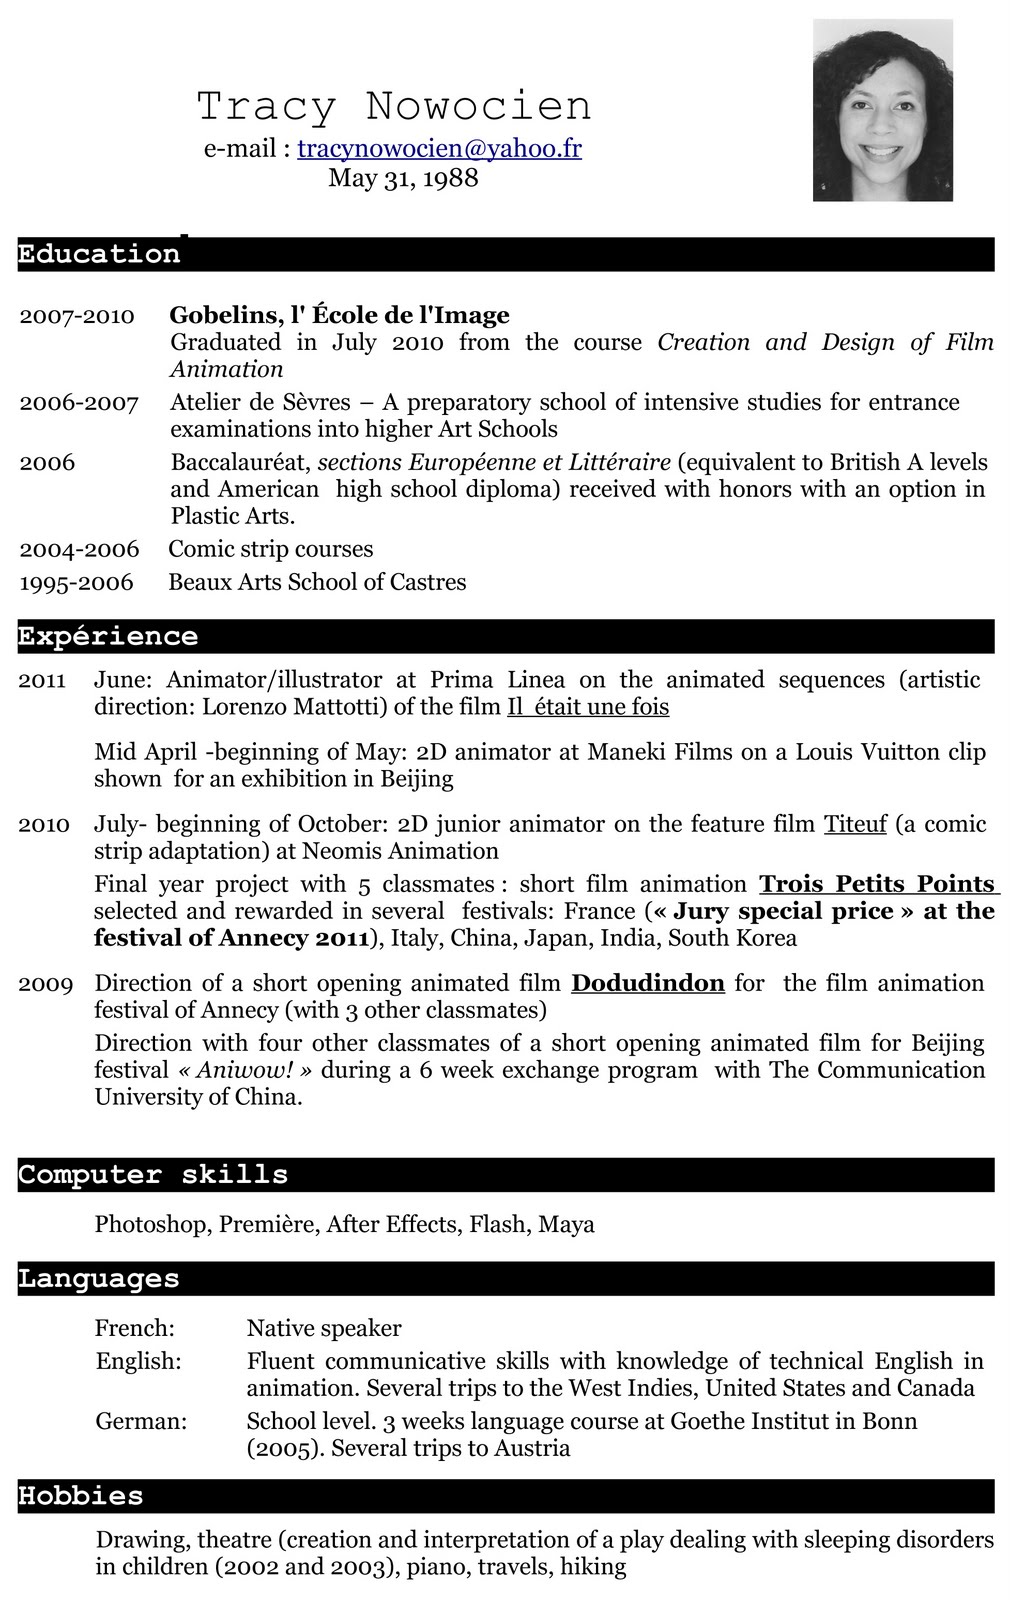 Tracy Nowocien Cv English